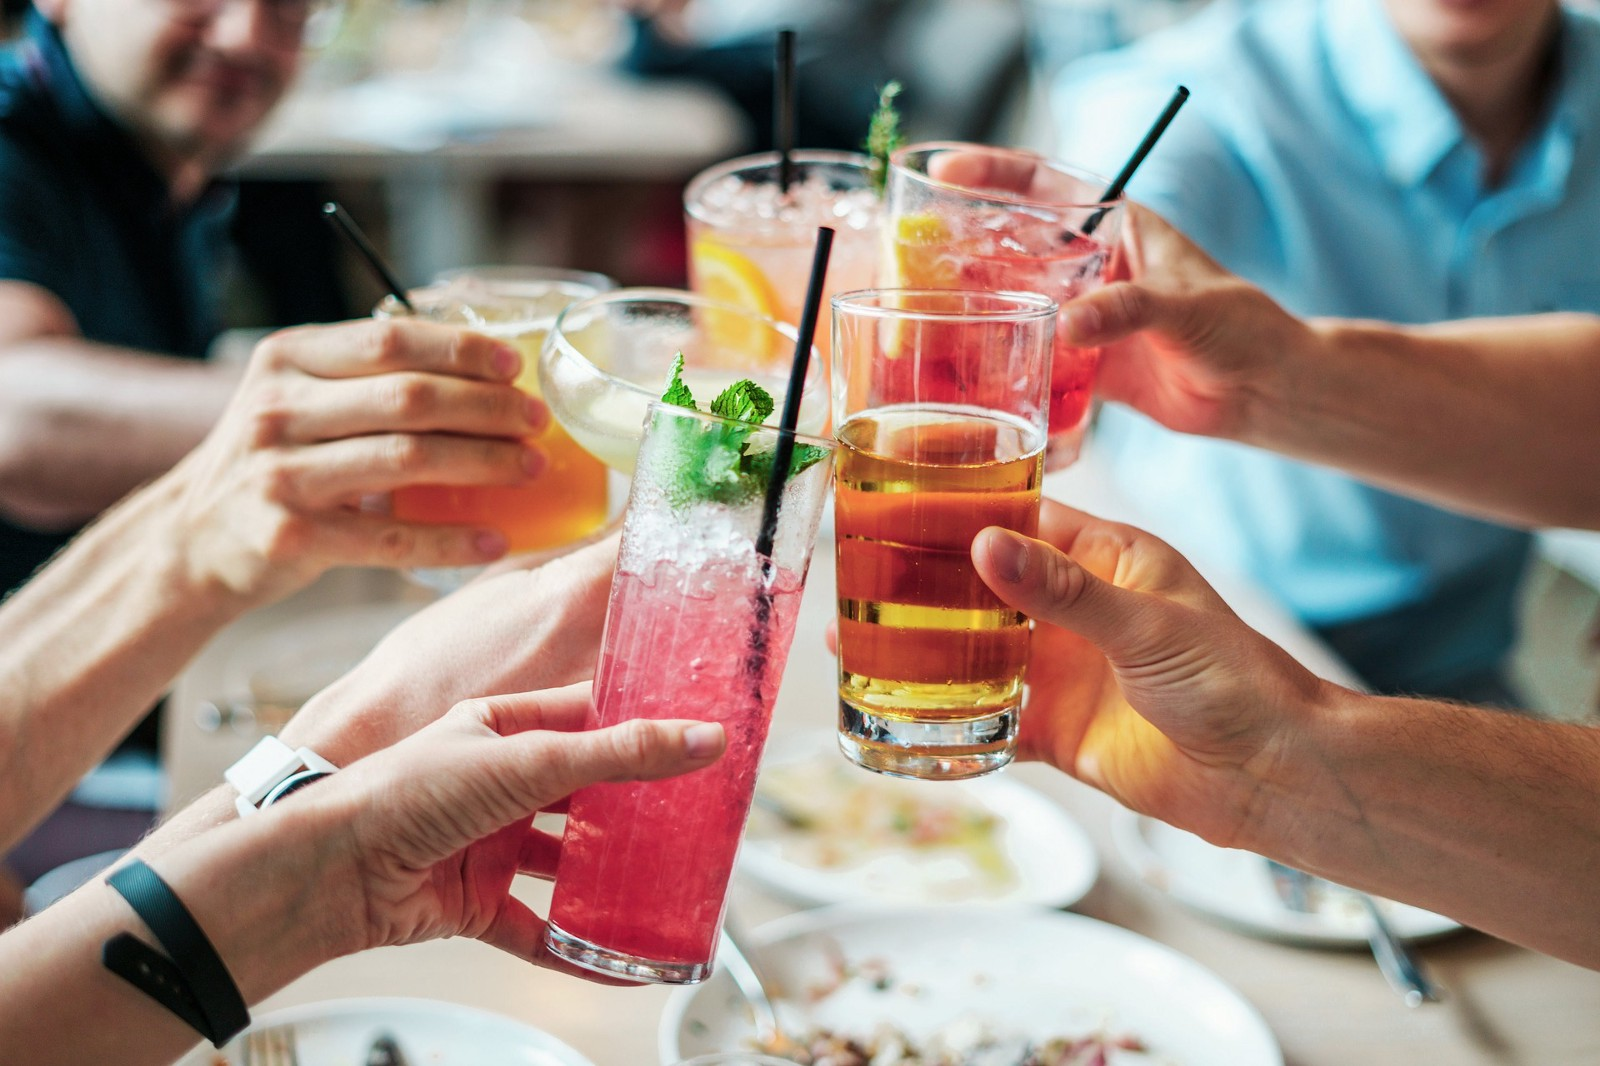 Developments To Drink Restaurants And Liquor Be First In Mullica Hill Since Prohibition